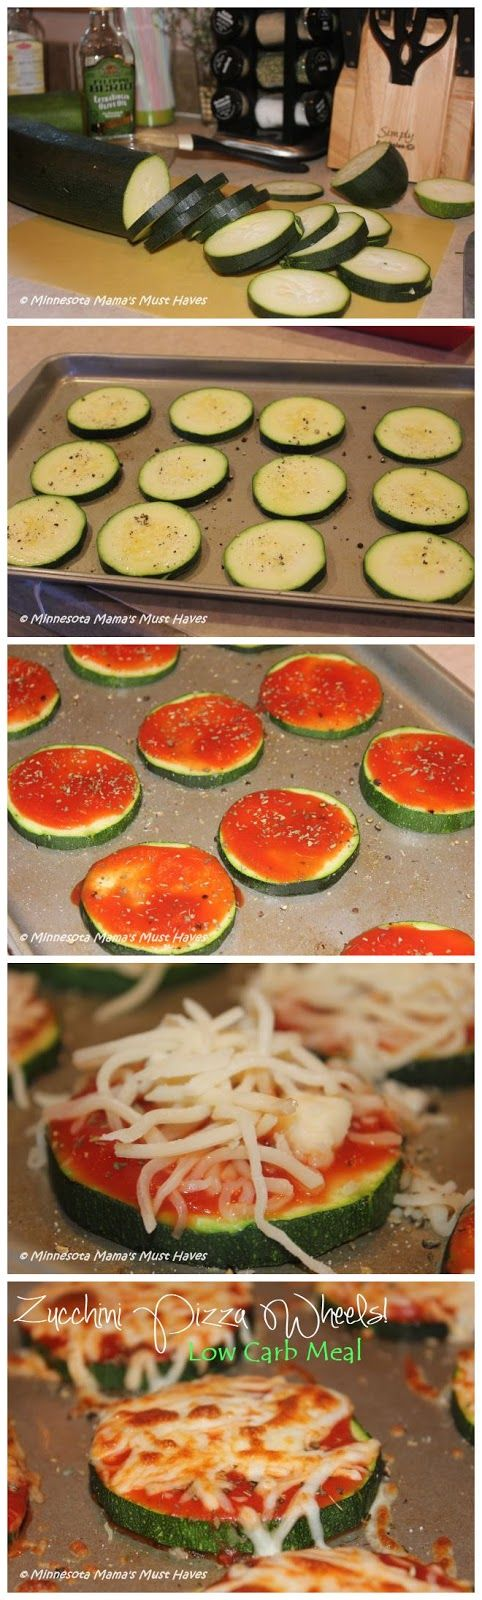 """Zucchini Pizza Wheels Large Zucchini, sliced into ¼"""" slices Olive Oil for brushing on Tomato sauce (8 oz or less) Italian seasoning or your favorite herbs ¼ Cup mozzarella cheese salt cracked pepper"""